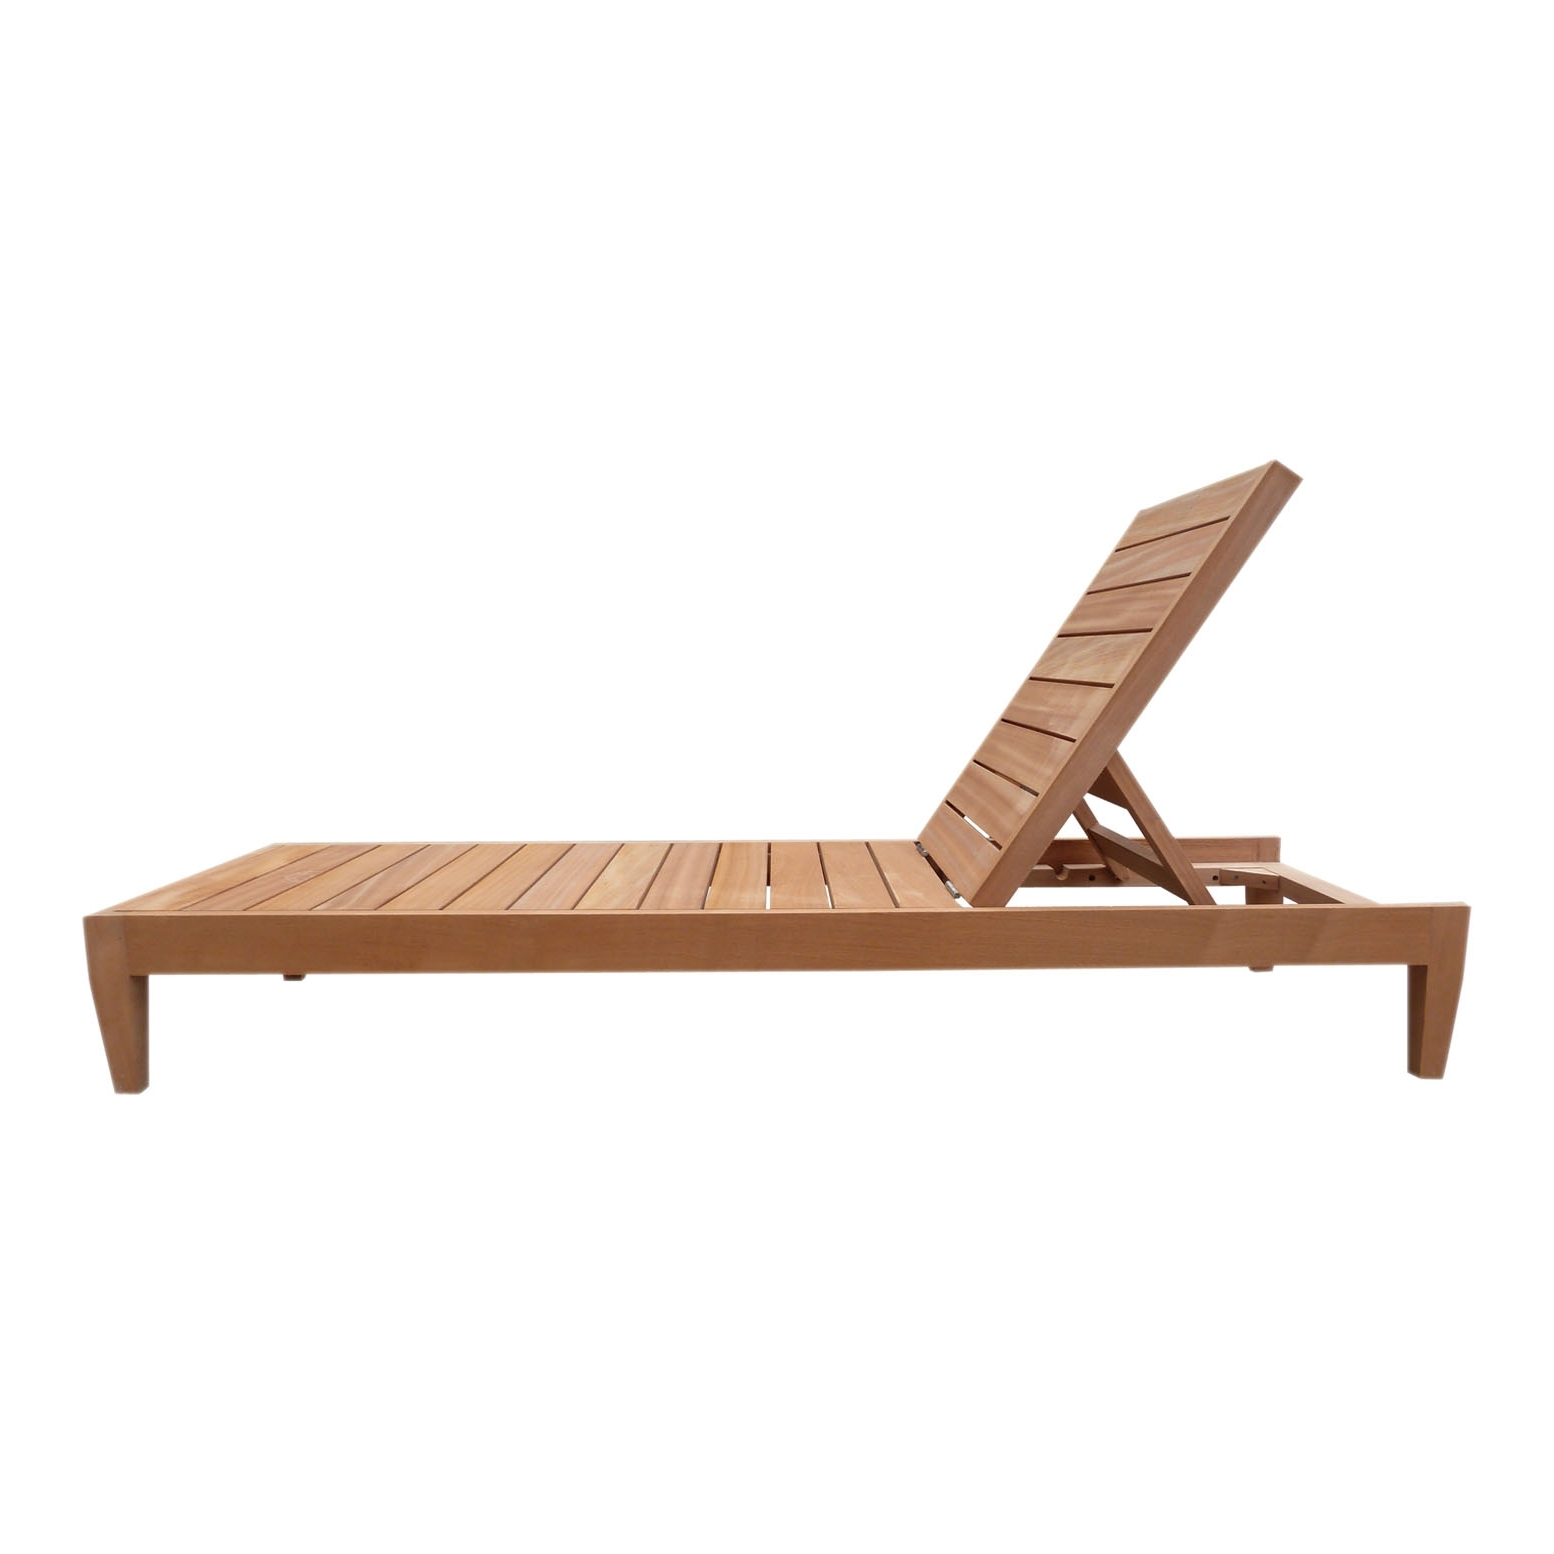 resin chaise lounge chairs revolving chair for sale in rawalpindi 15 inspirations of wooden outdoor